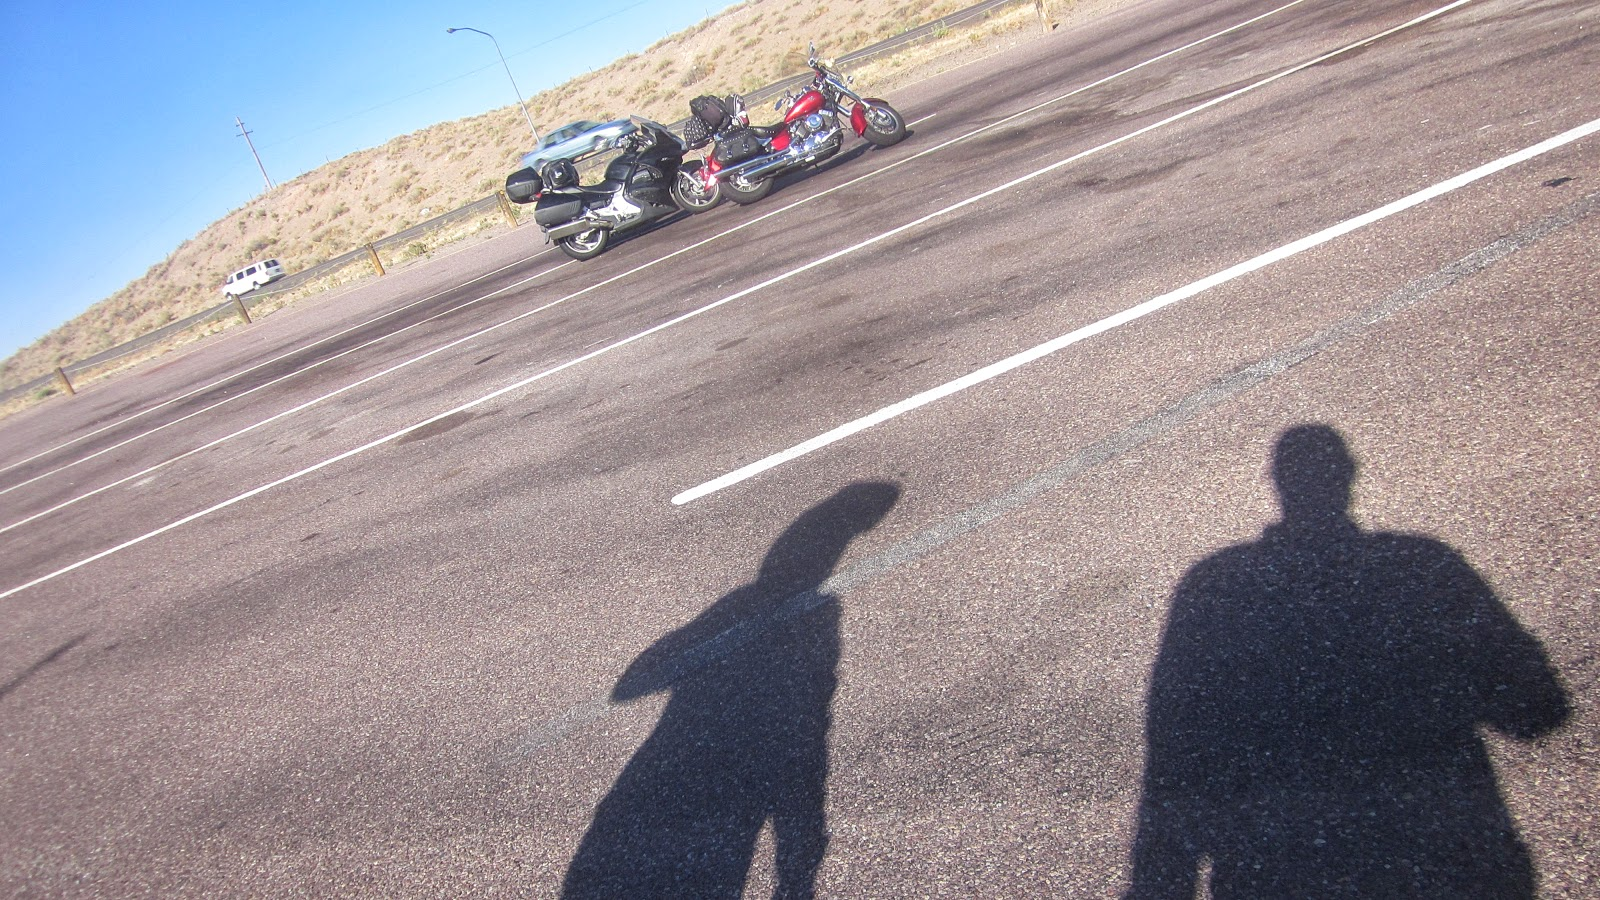 shadows and motorcycles